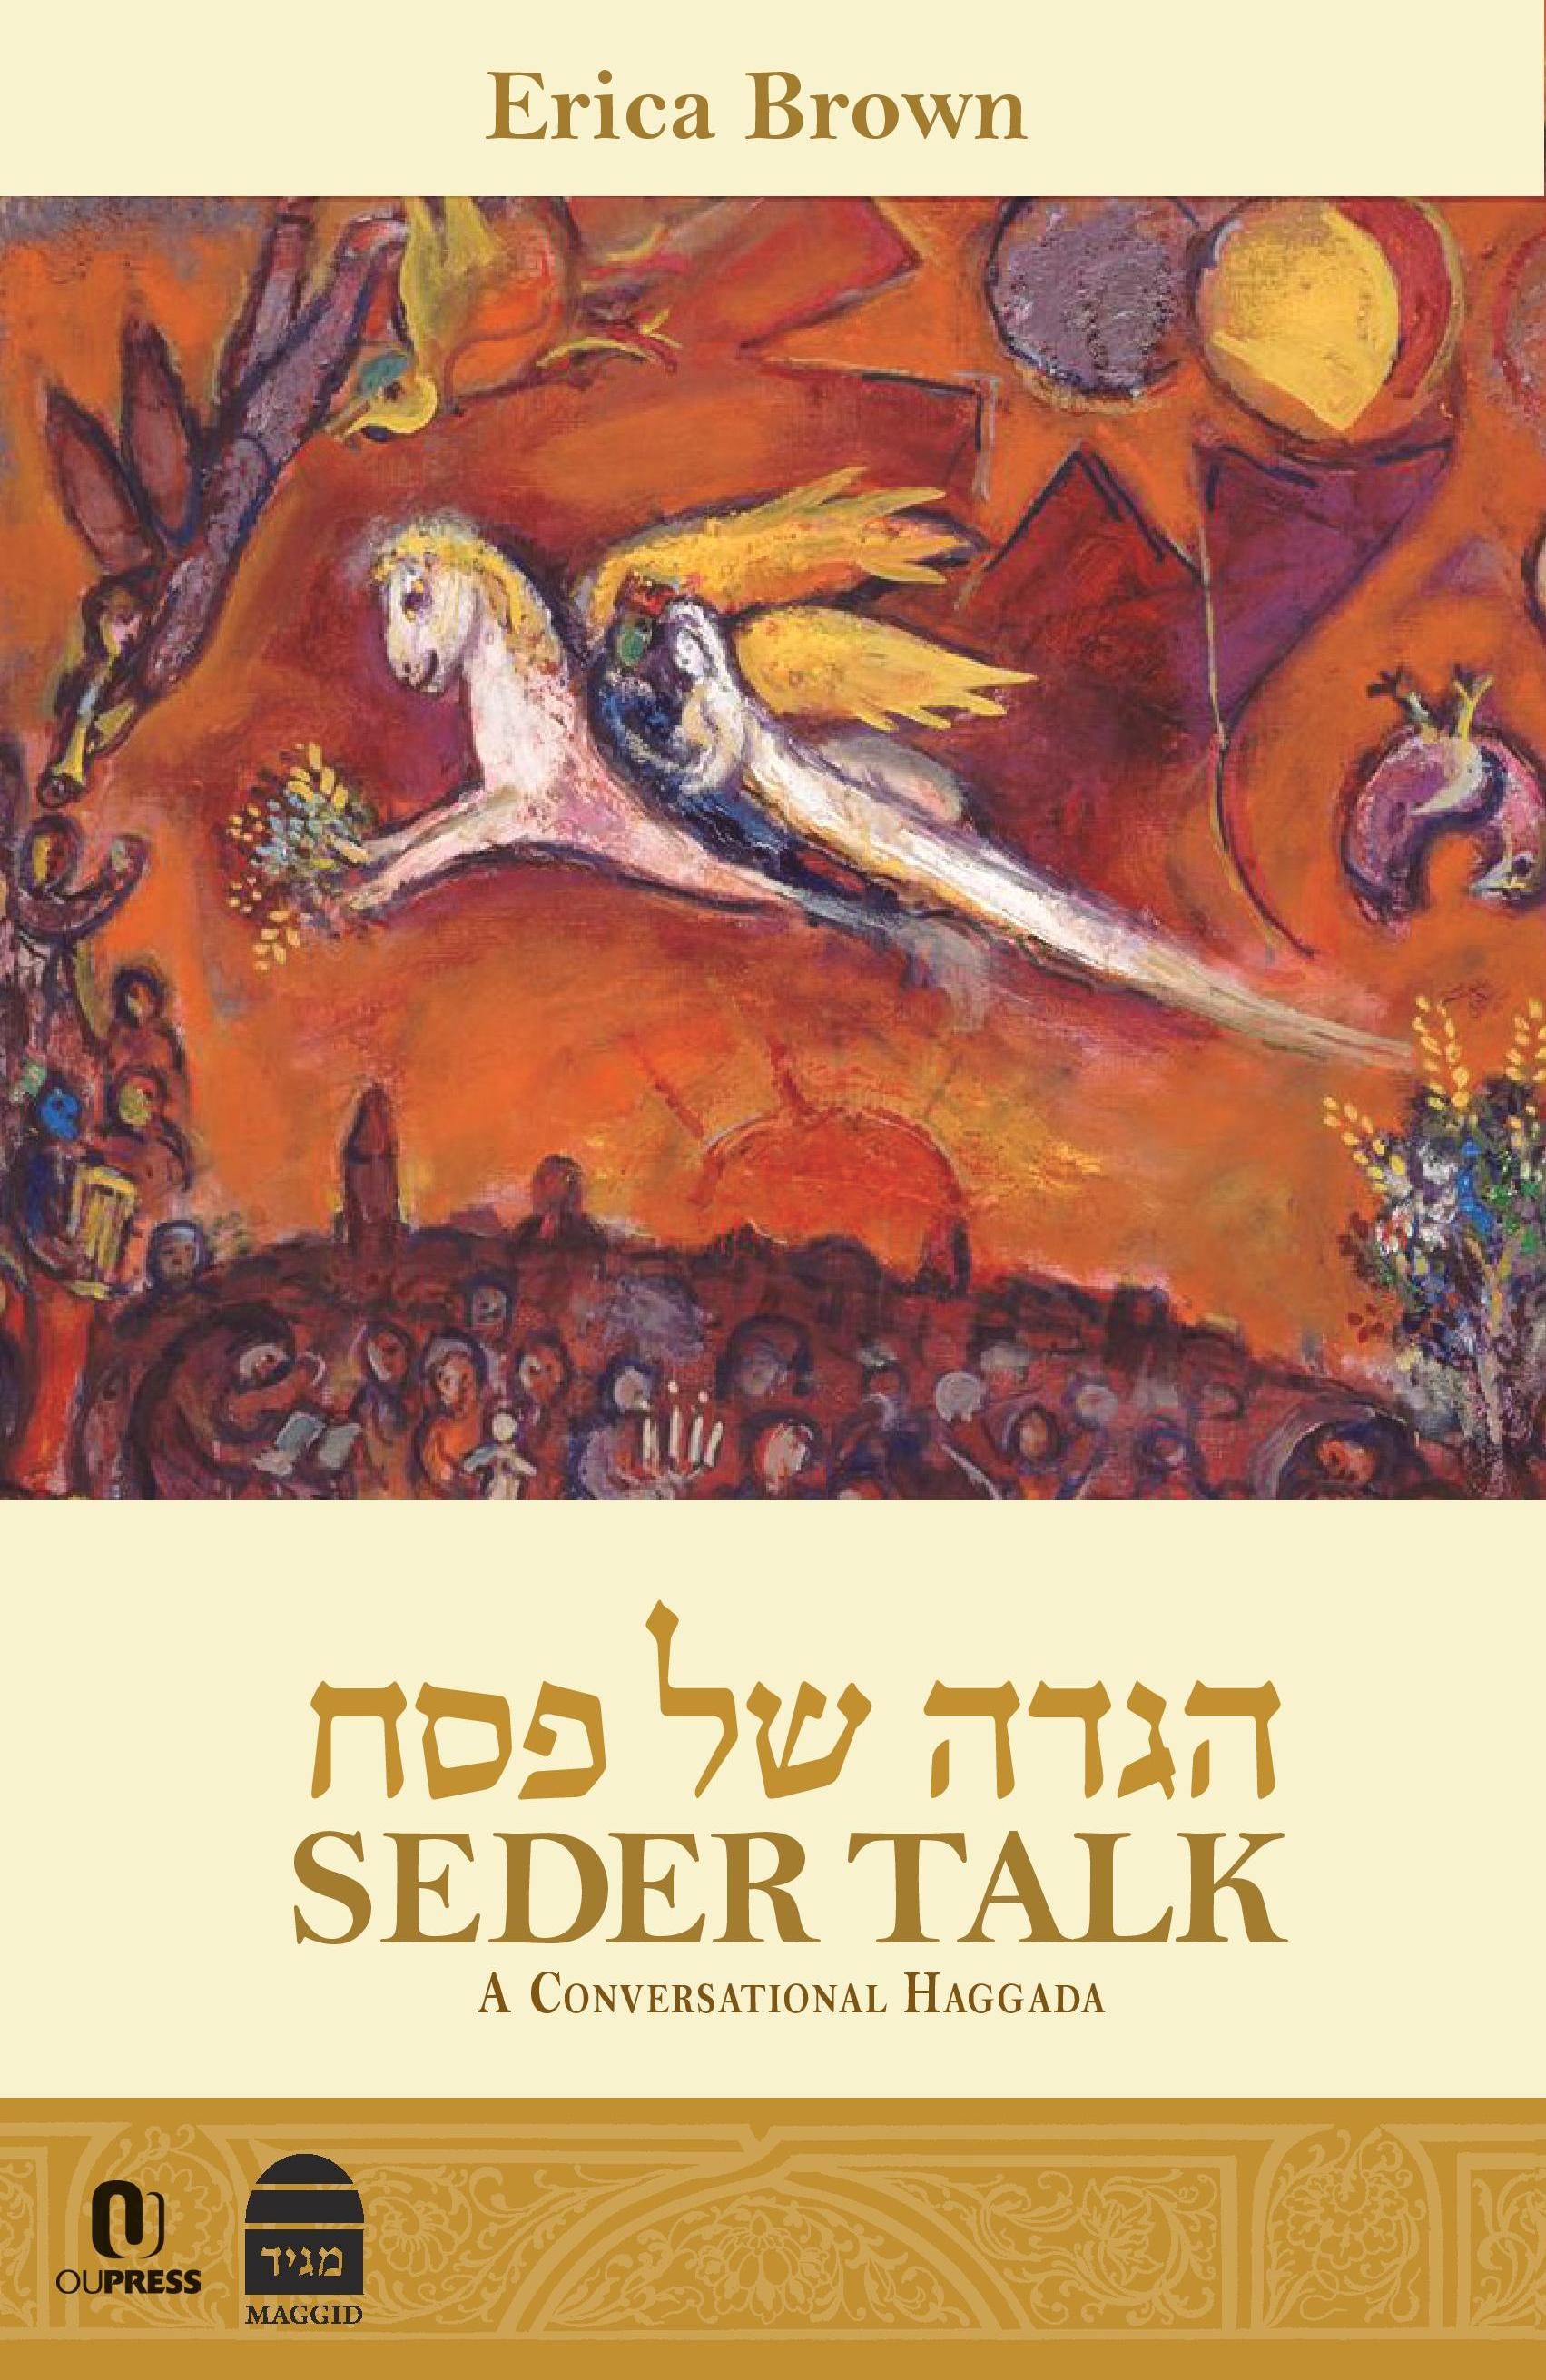 Seder-Talk-Haggada-by-Eric-Brown-Cover-Image.jpg